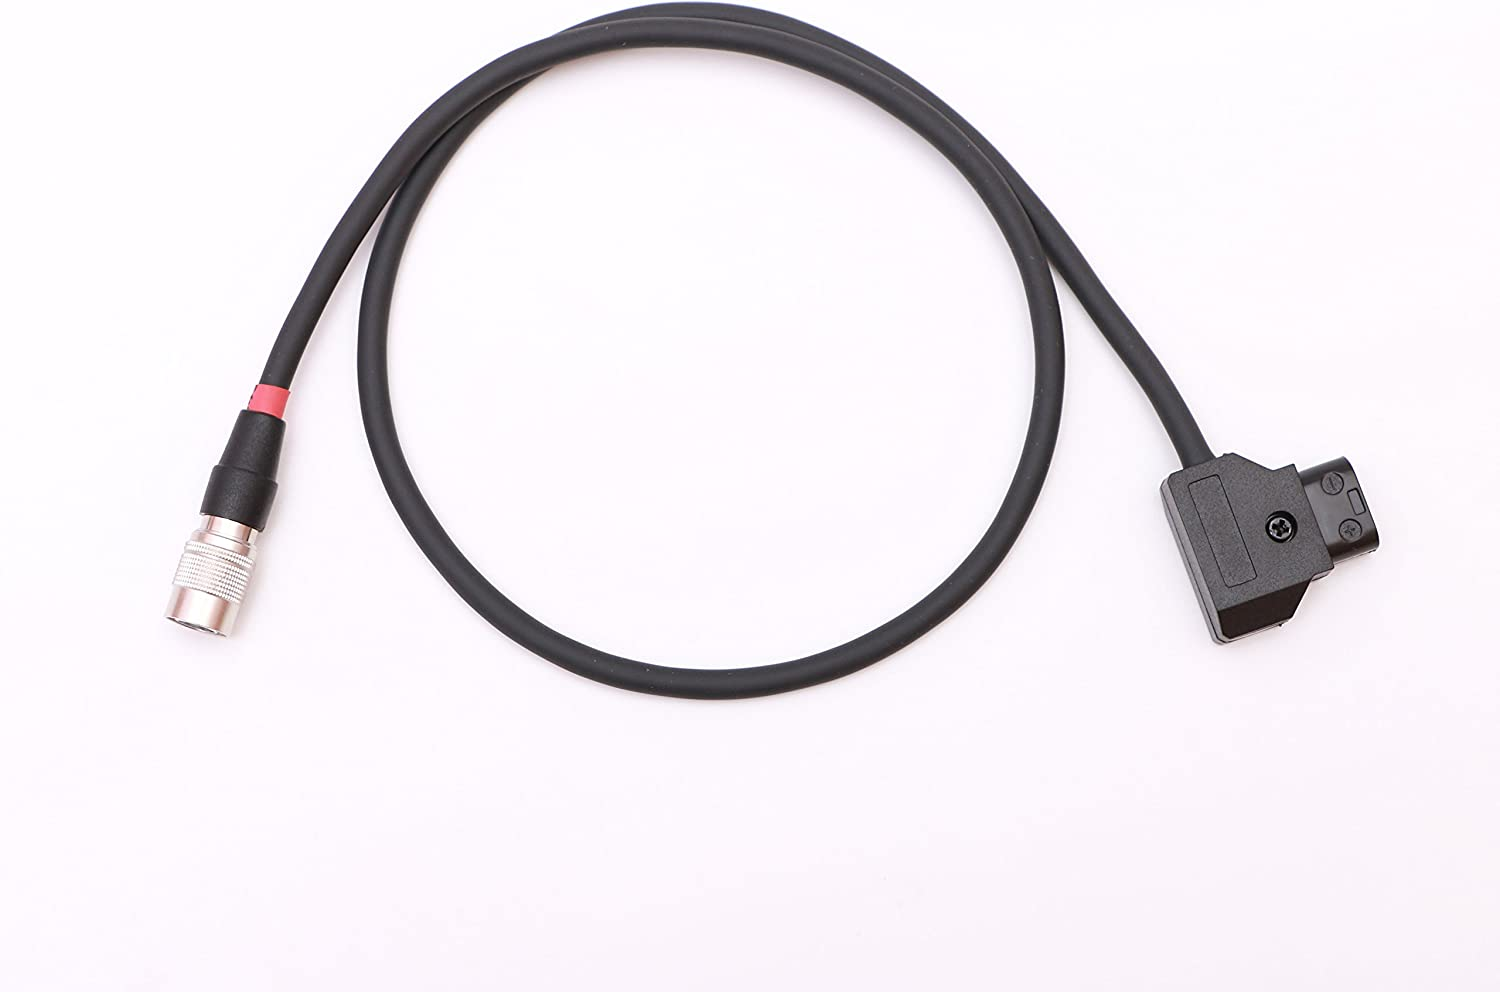 Hirose 4 Pin Male//Female to D-Tap Power Cable for SmallHD DP7 and AC7 monitor